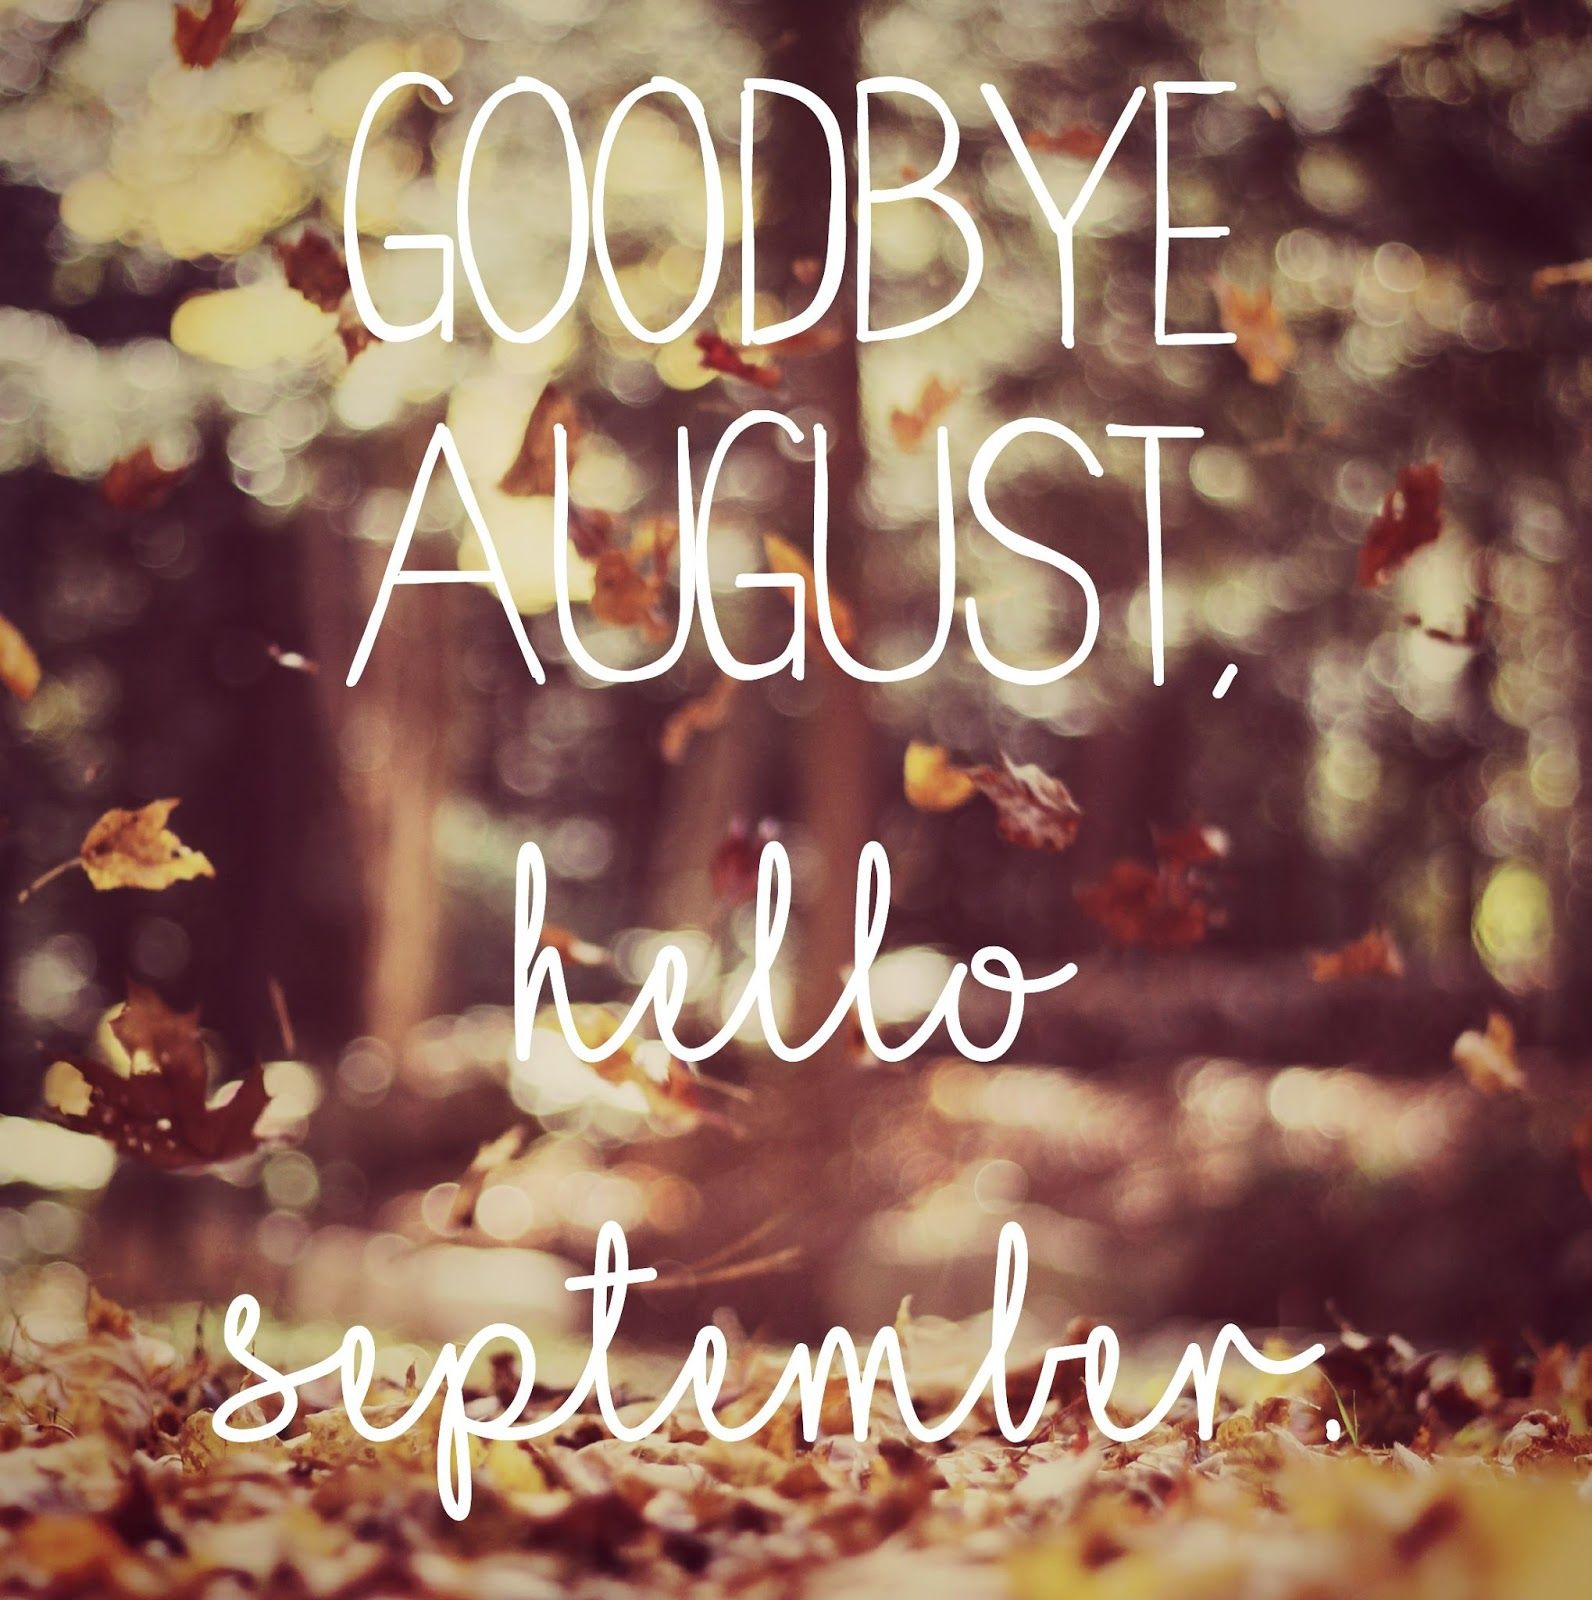 Goodbye August Hello September Images